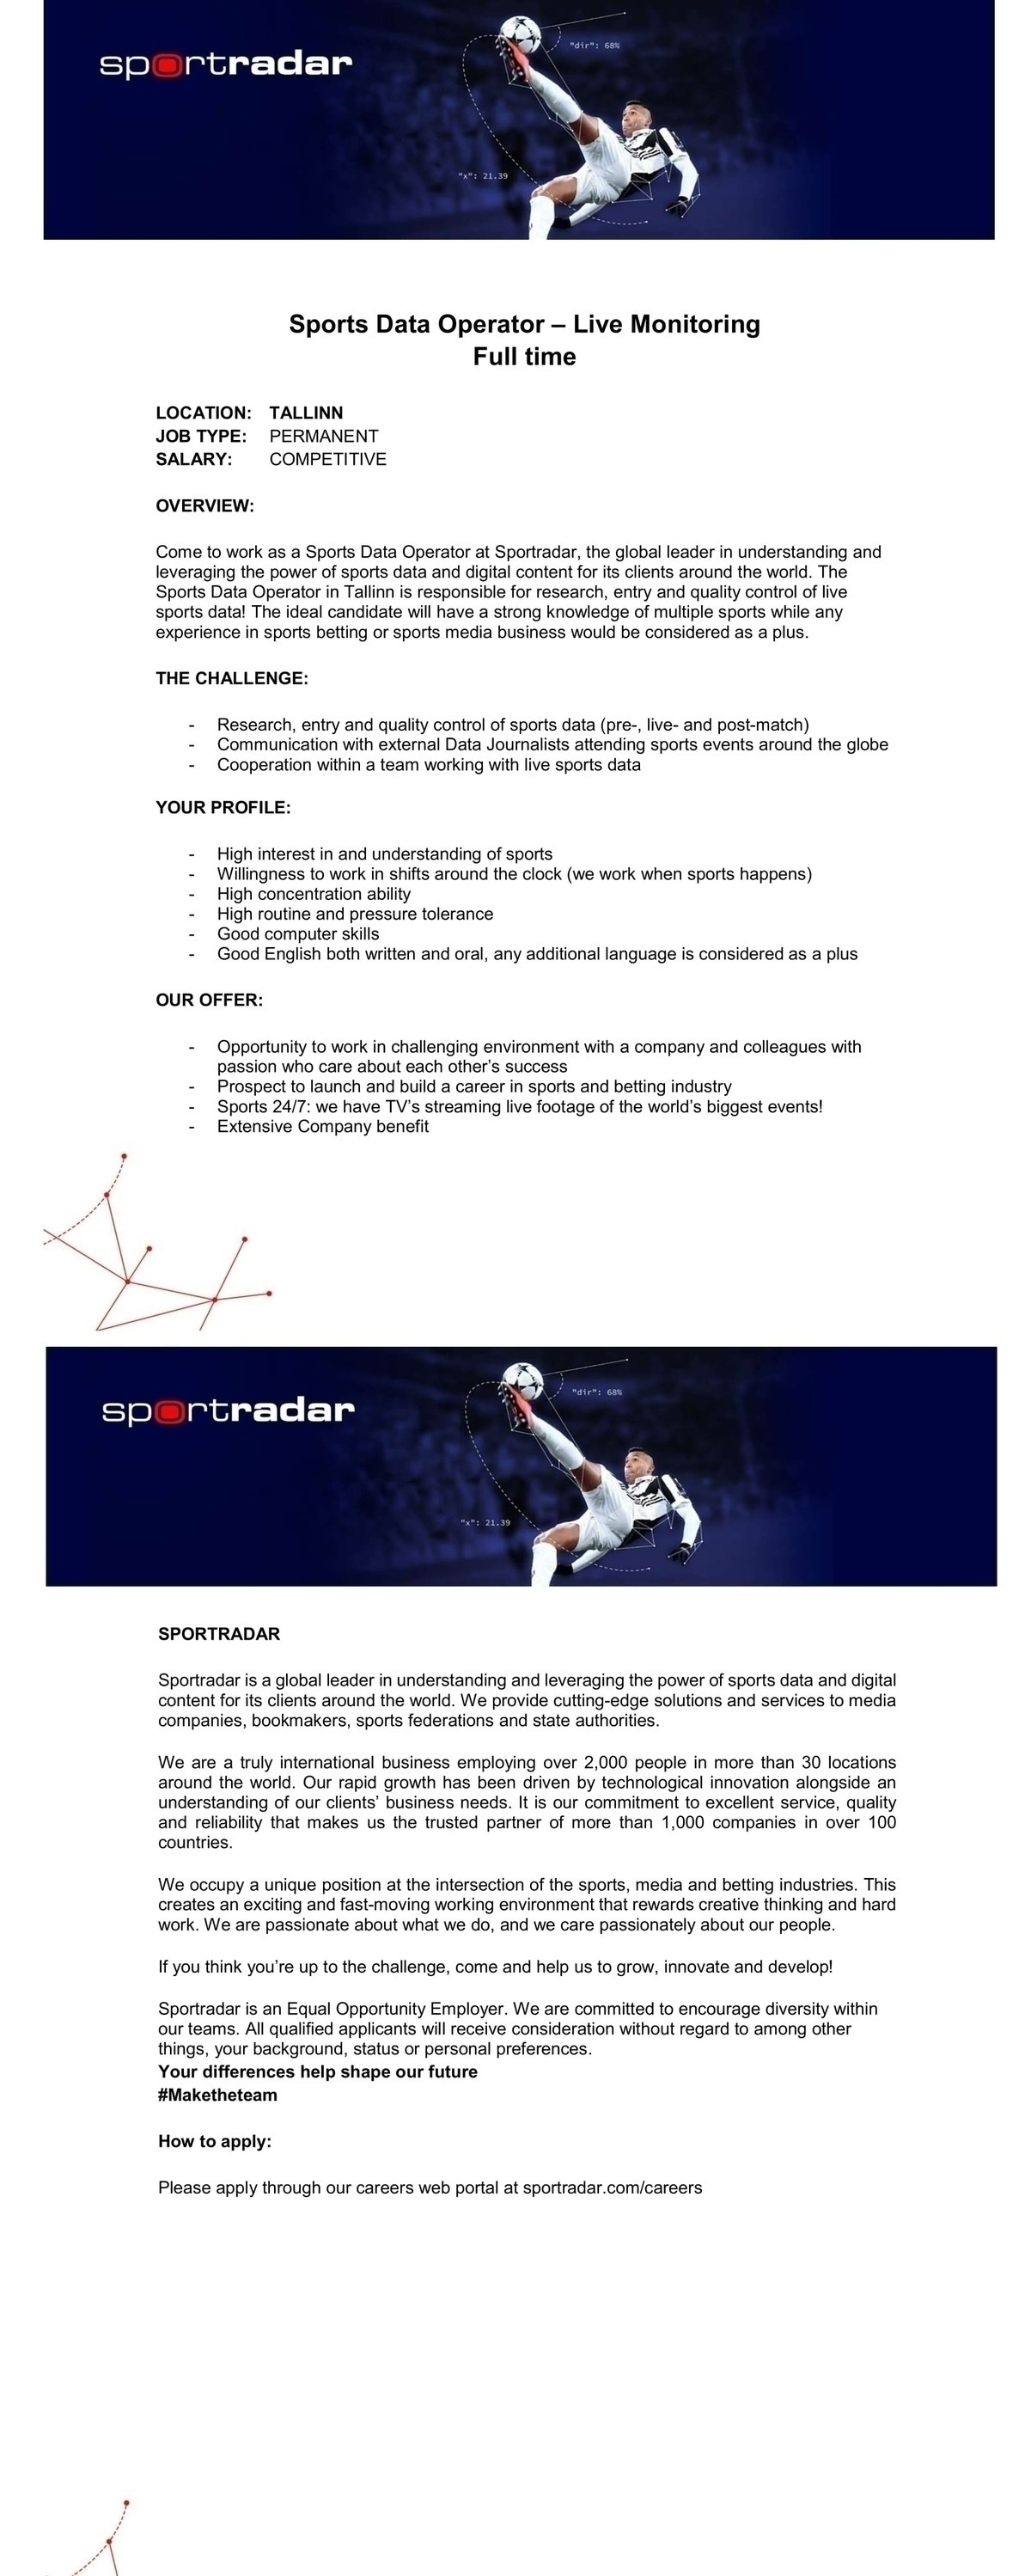 Sportradar OÜ Sports Data Operator – Live Monitoring Full time